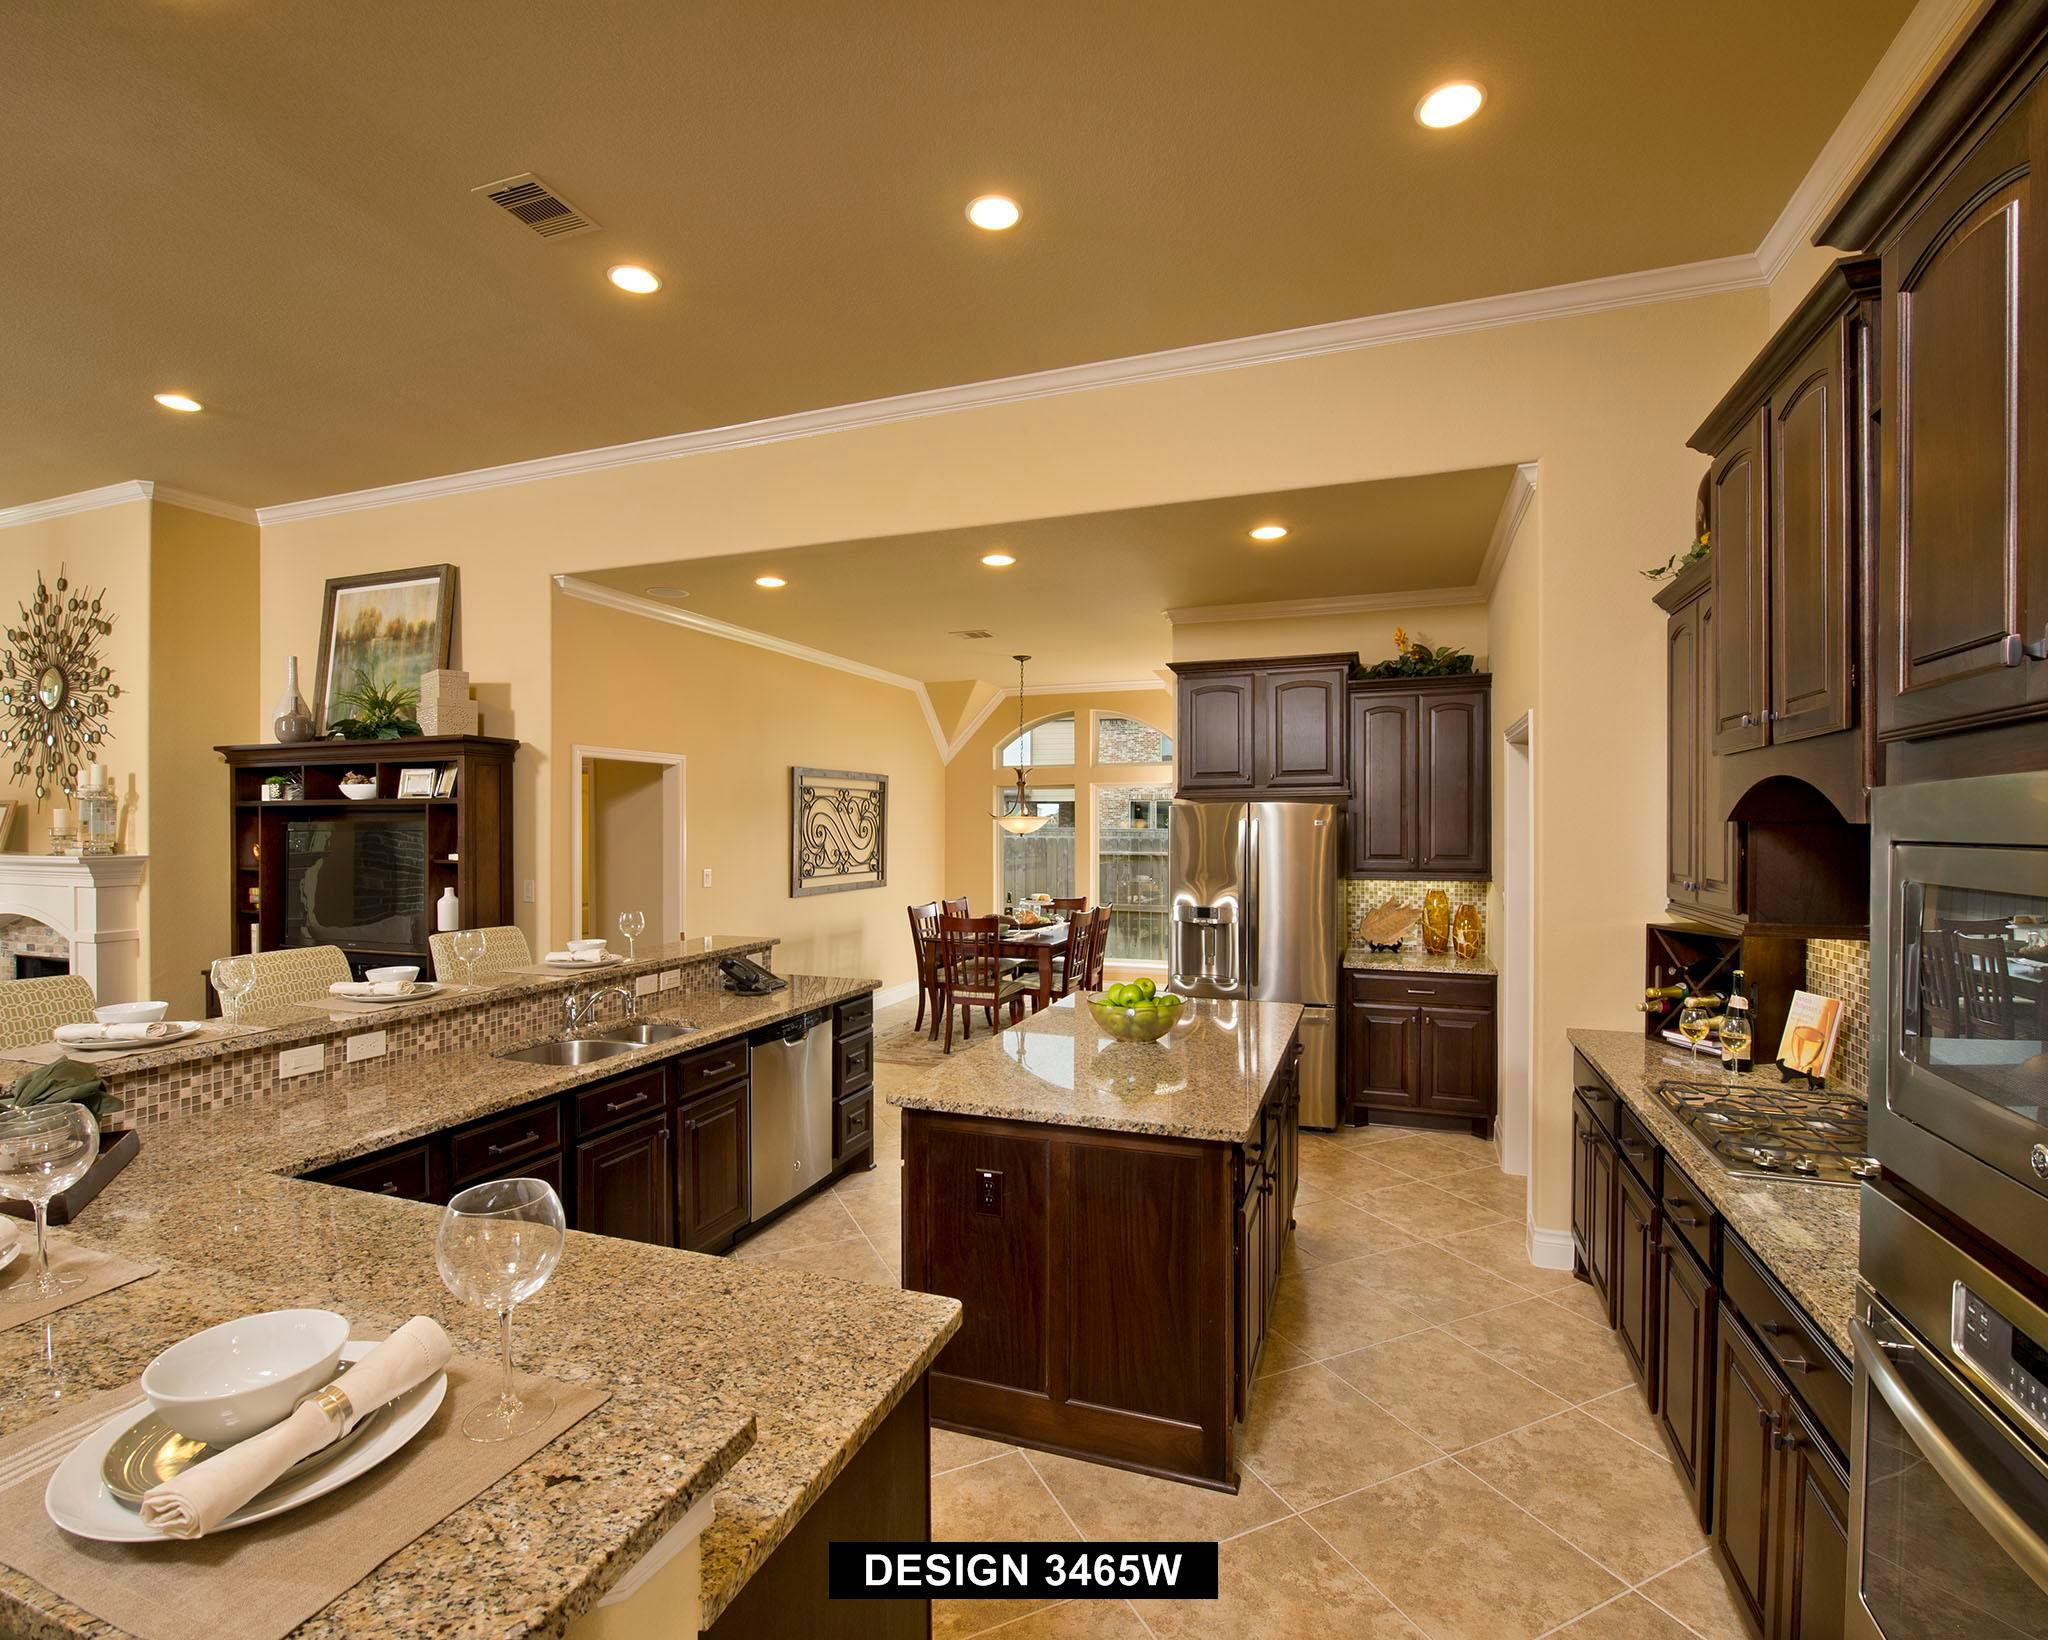 Kitchen featured in the 3465W By Perry Homes in San Antonio, TX